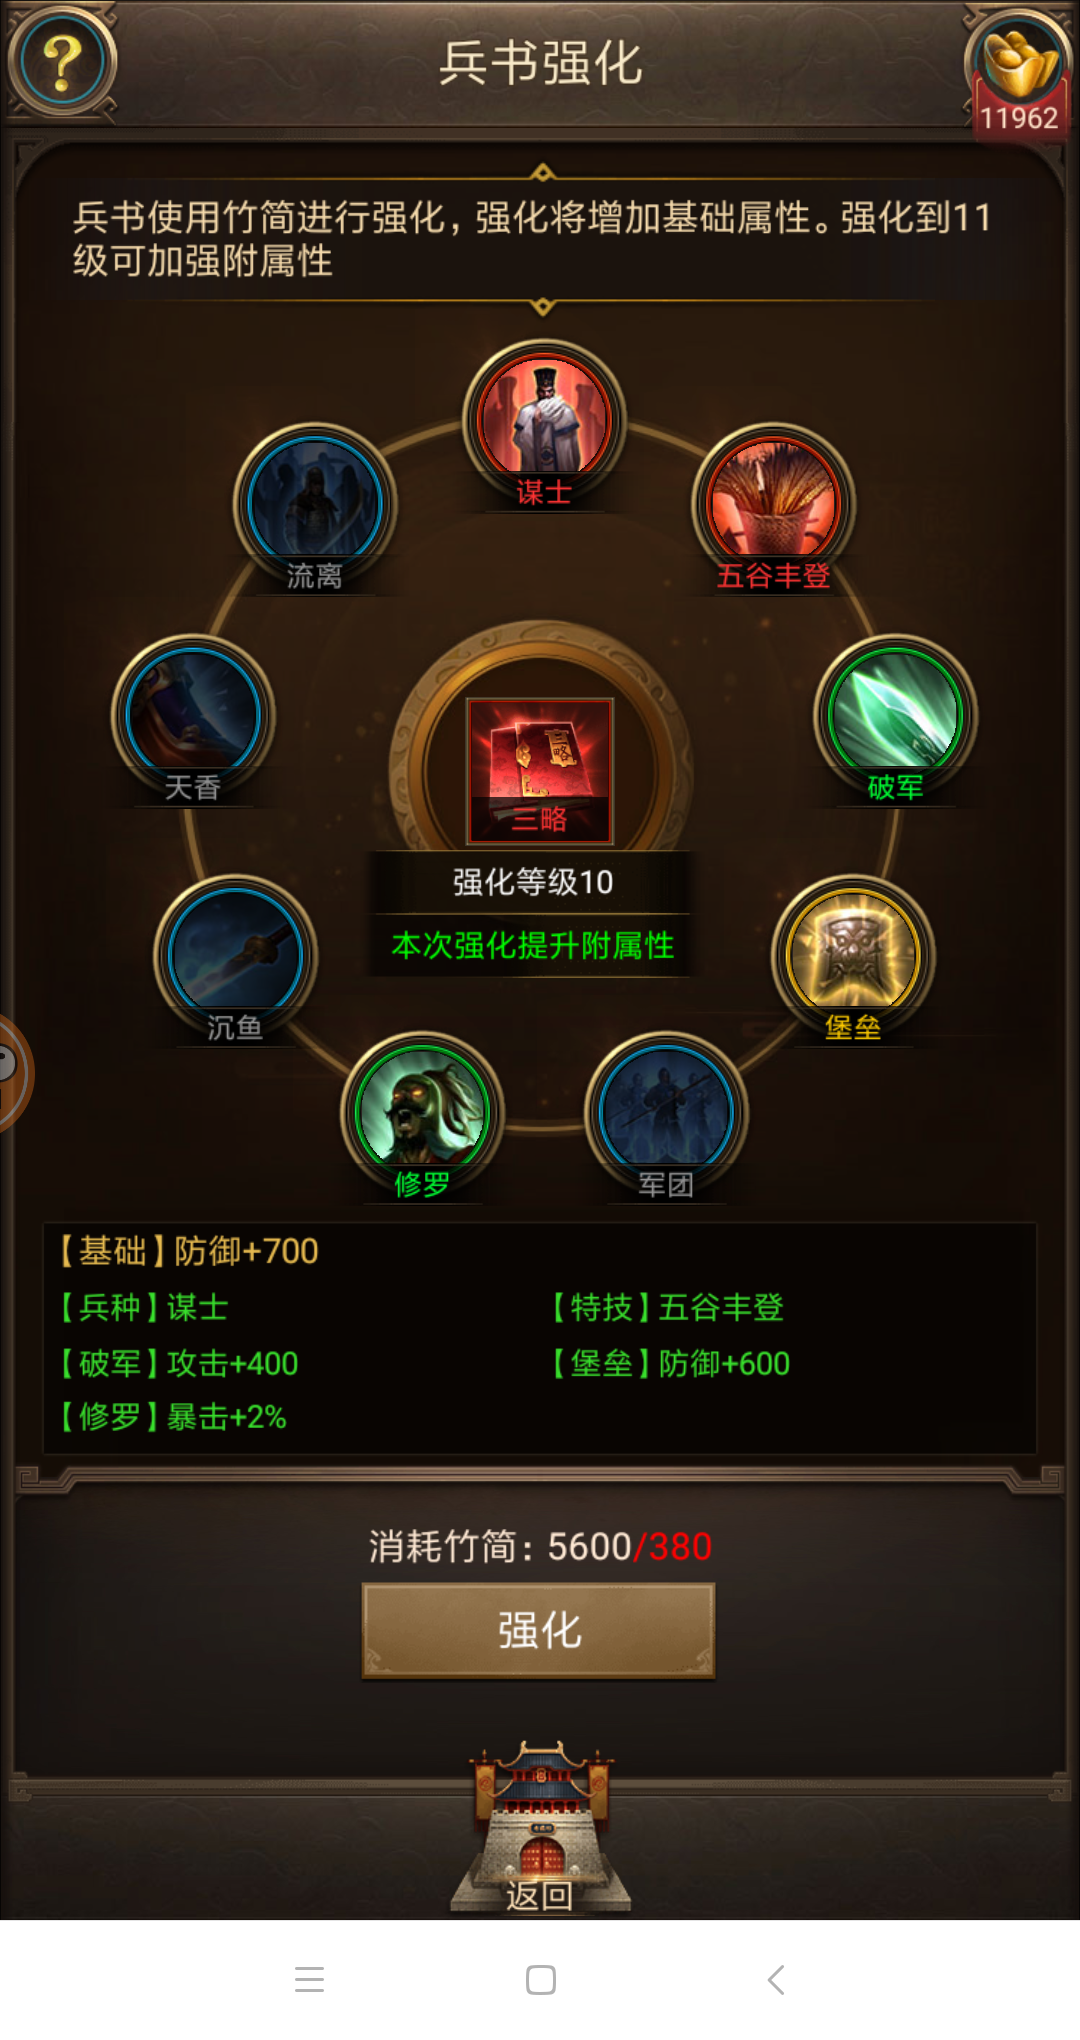 Screenshot_2018-10-14-10-38-36-602_com.juedigame.blzz.shoumeng.png